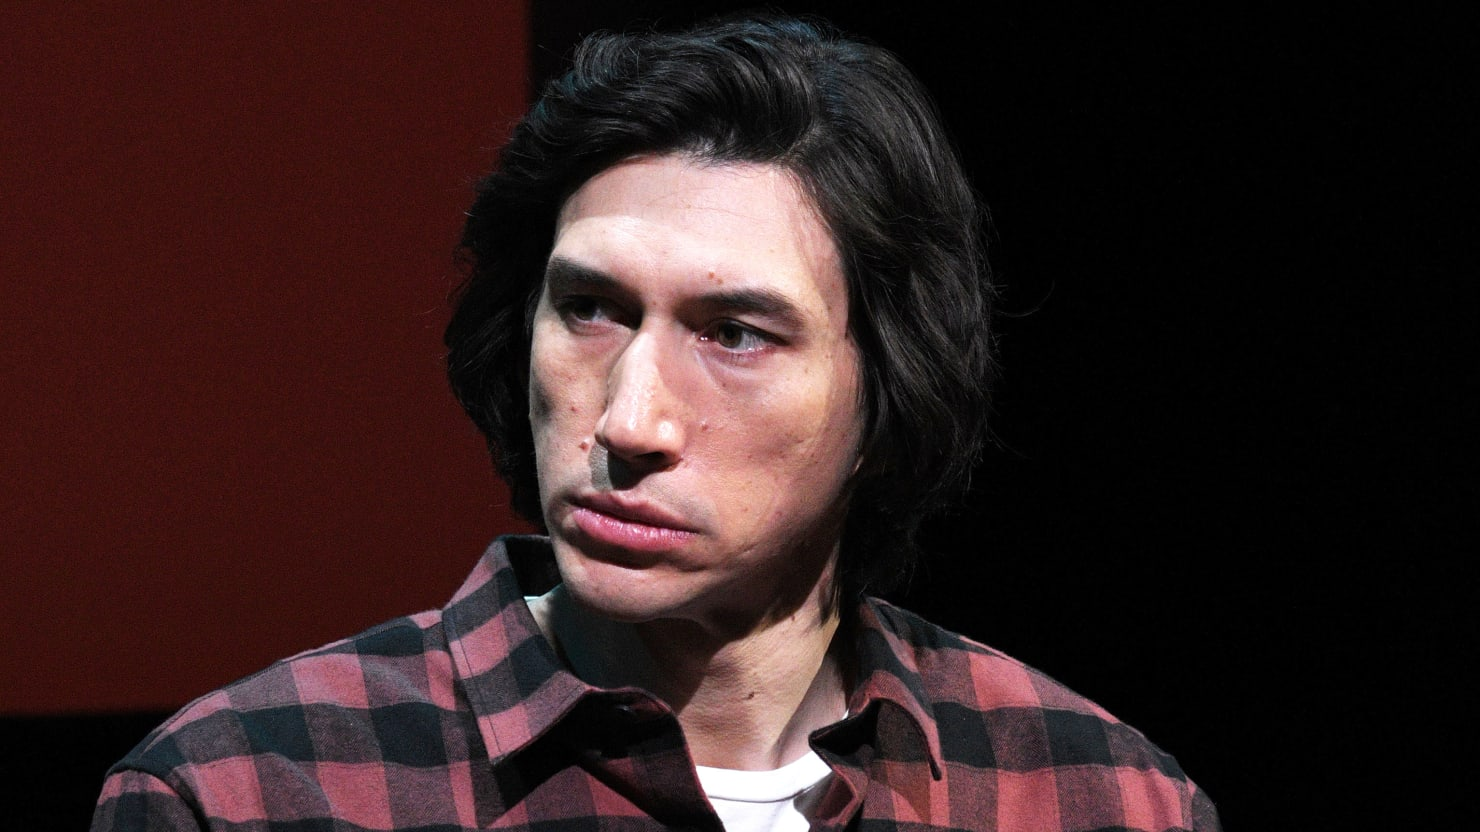 Adam Driver Walks Out of NPR 'Fresh Air' Interview Over 'Marriage Story' Clip